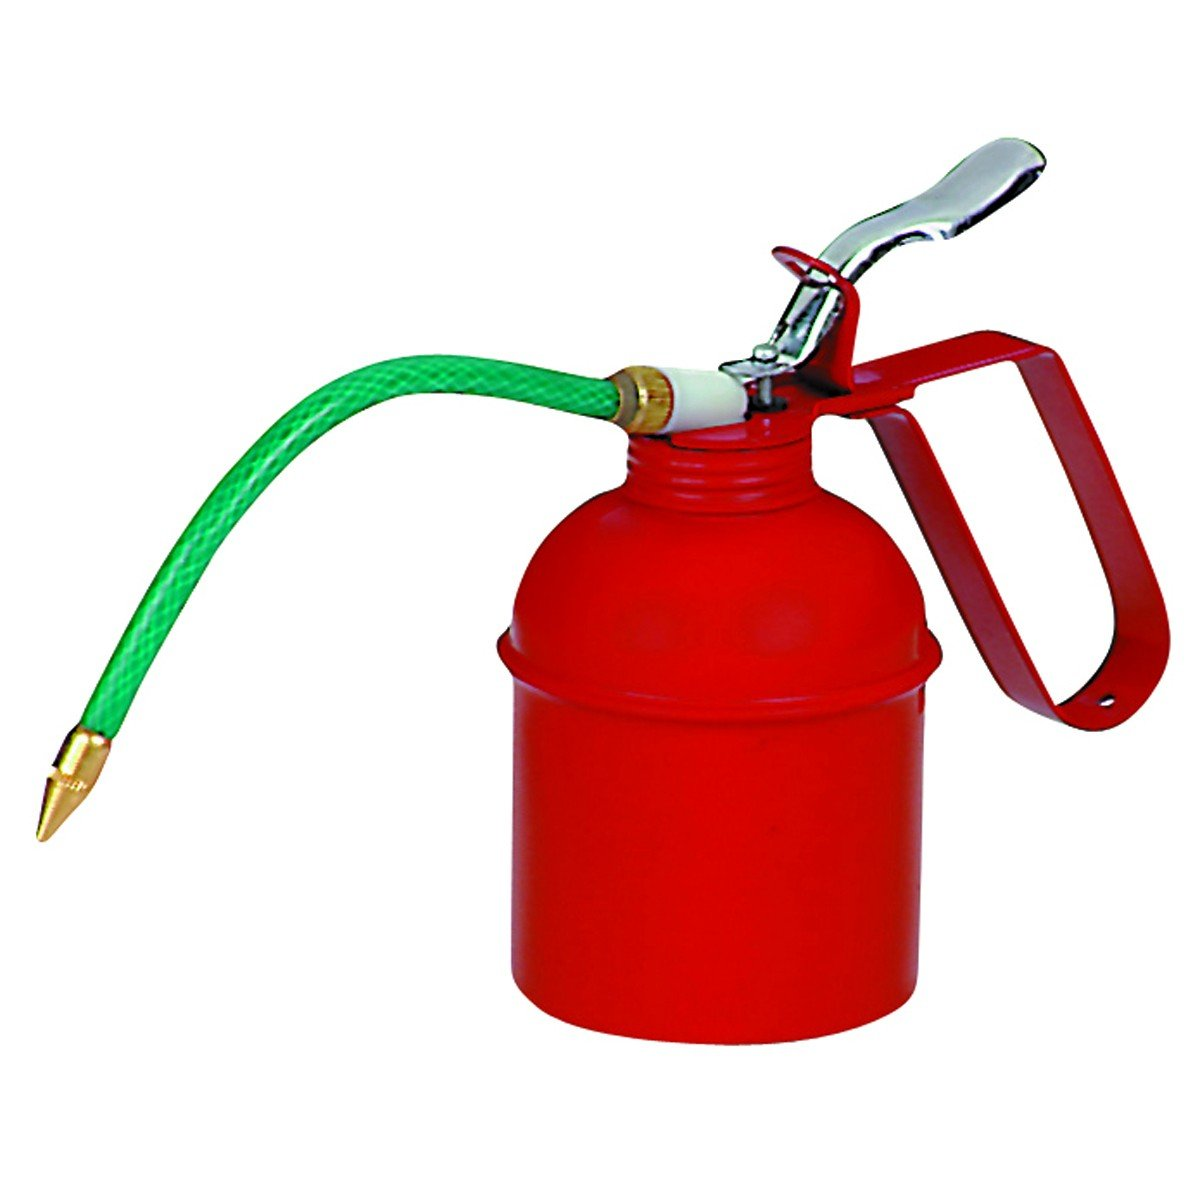 20 Oz. Flexible Spout Oil Can from TNM